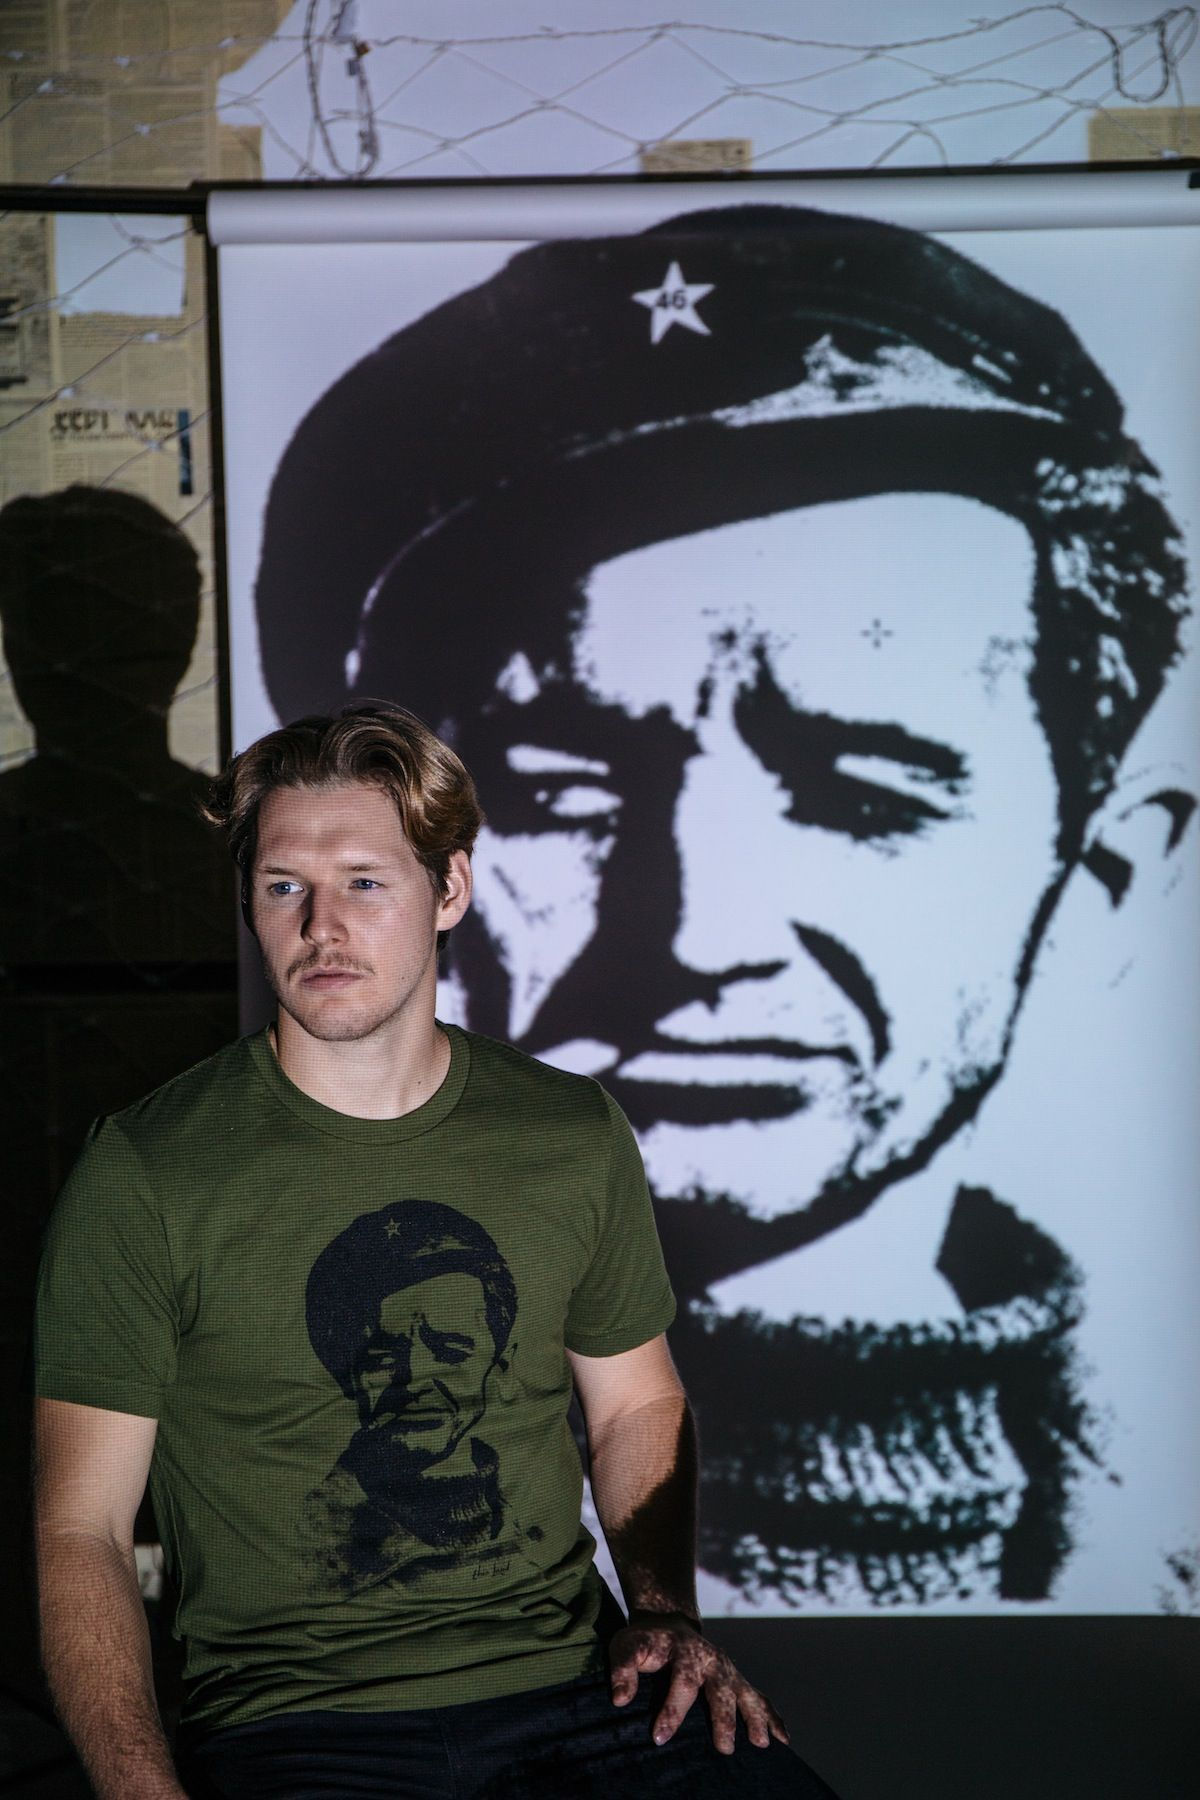 6495859aef Our newest Woody Guthrie shirt is inspired by the iconic portrait of Che  Guevara taken by Alberto Kordo in 1960